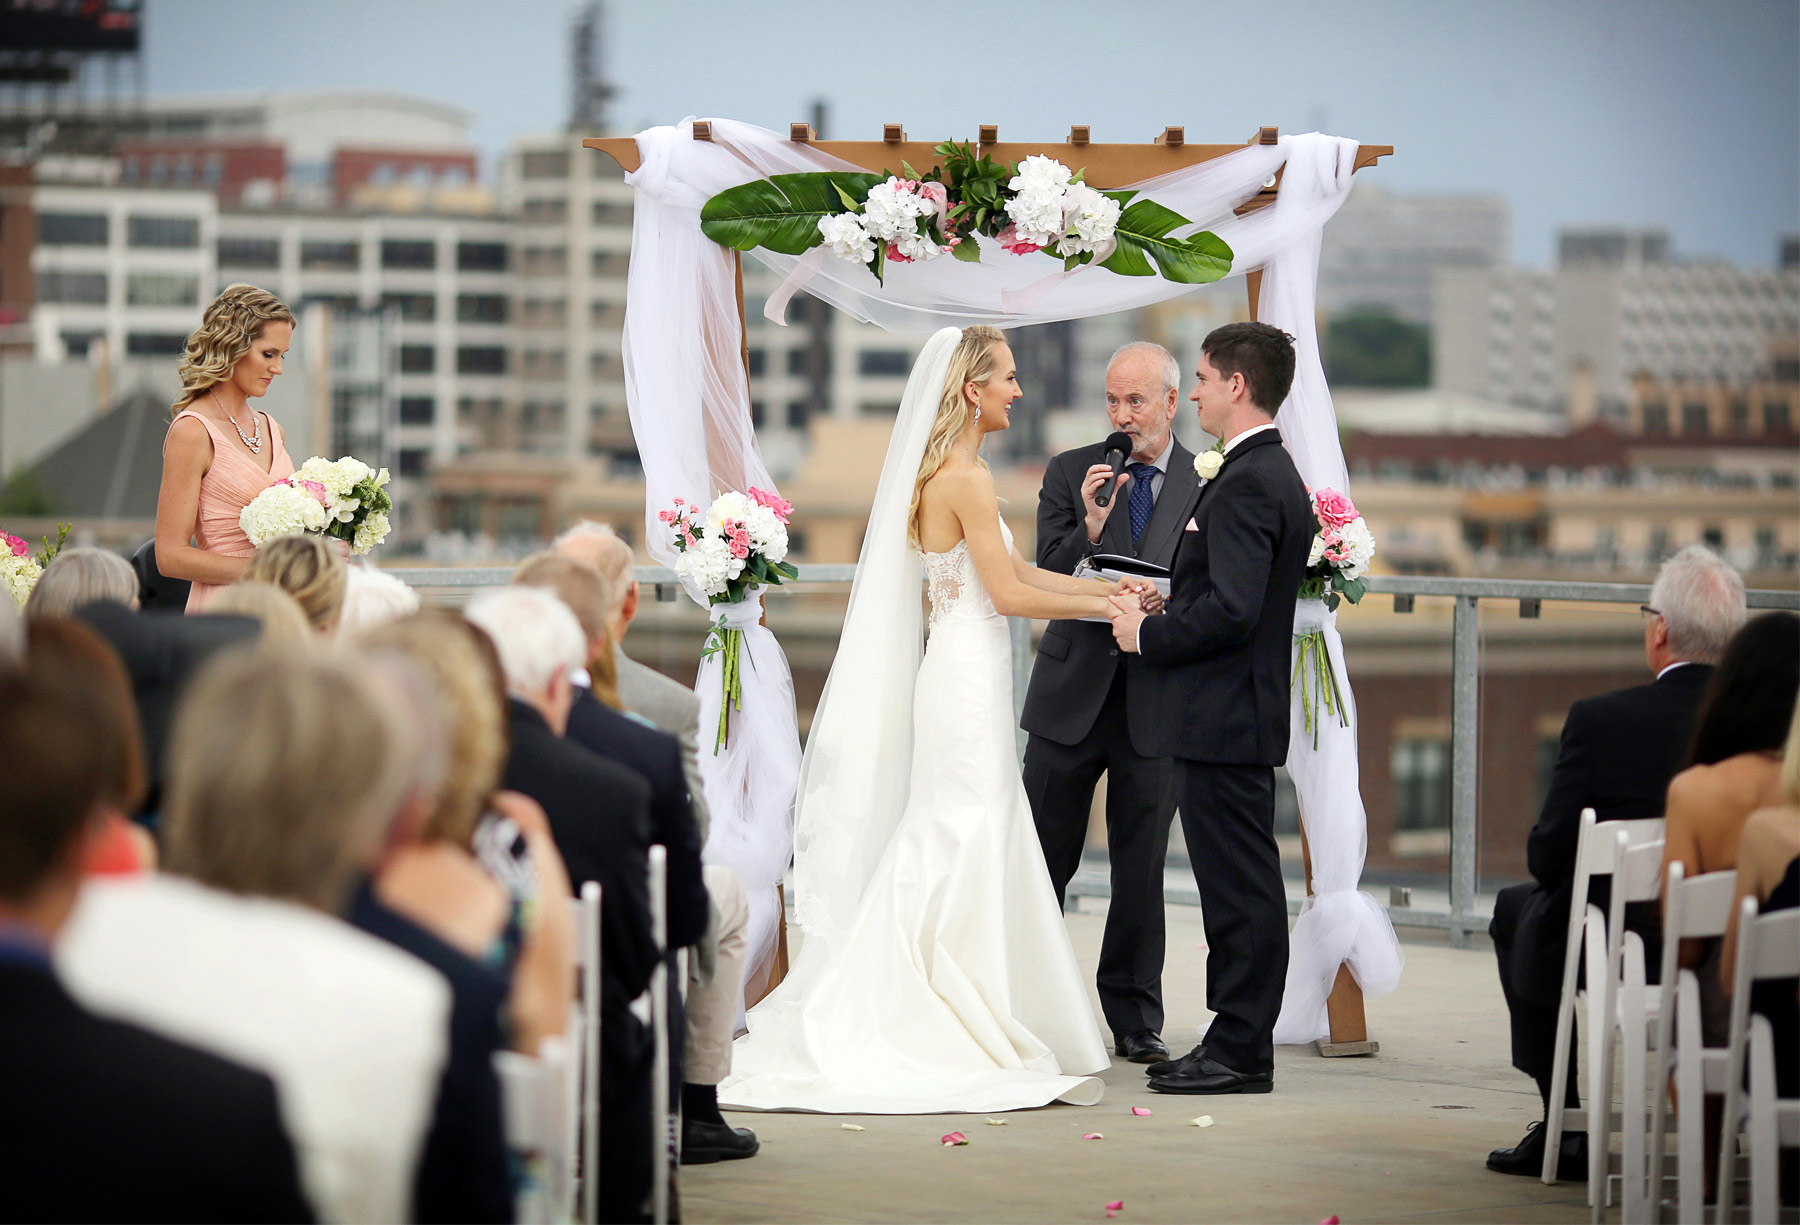 12-Saint-Paul-Minnesota-Wedding-Photographer-by-Andrew-Vick-Photography-Summer-Abulae-Ceremony-Groom-Bride-Dress-Vows-Laura-and-Tim.jpg